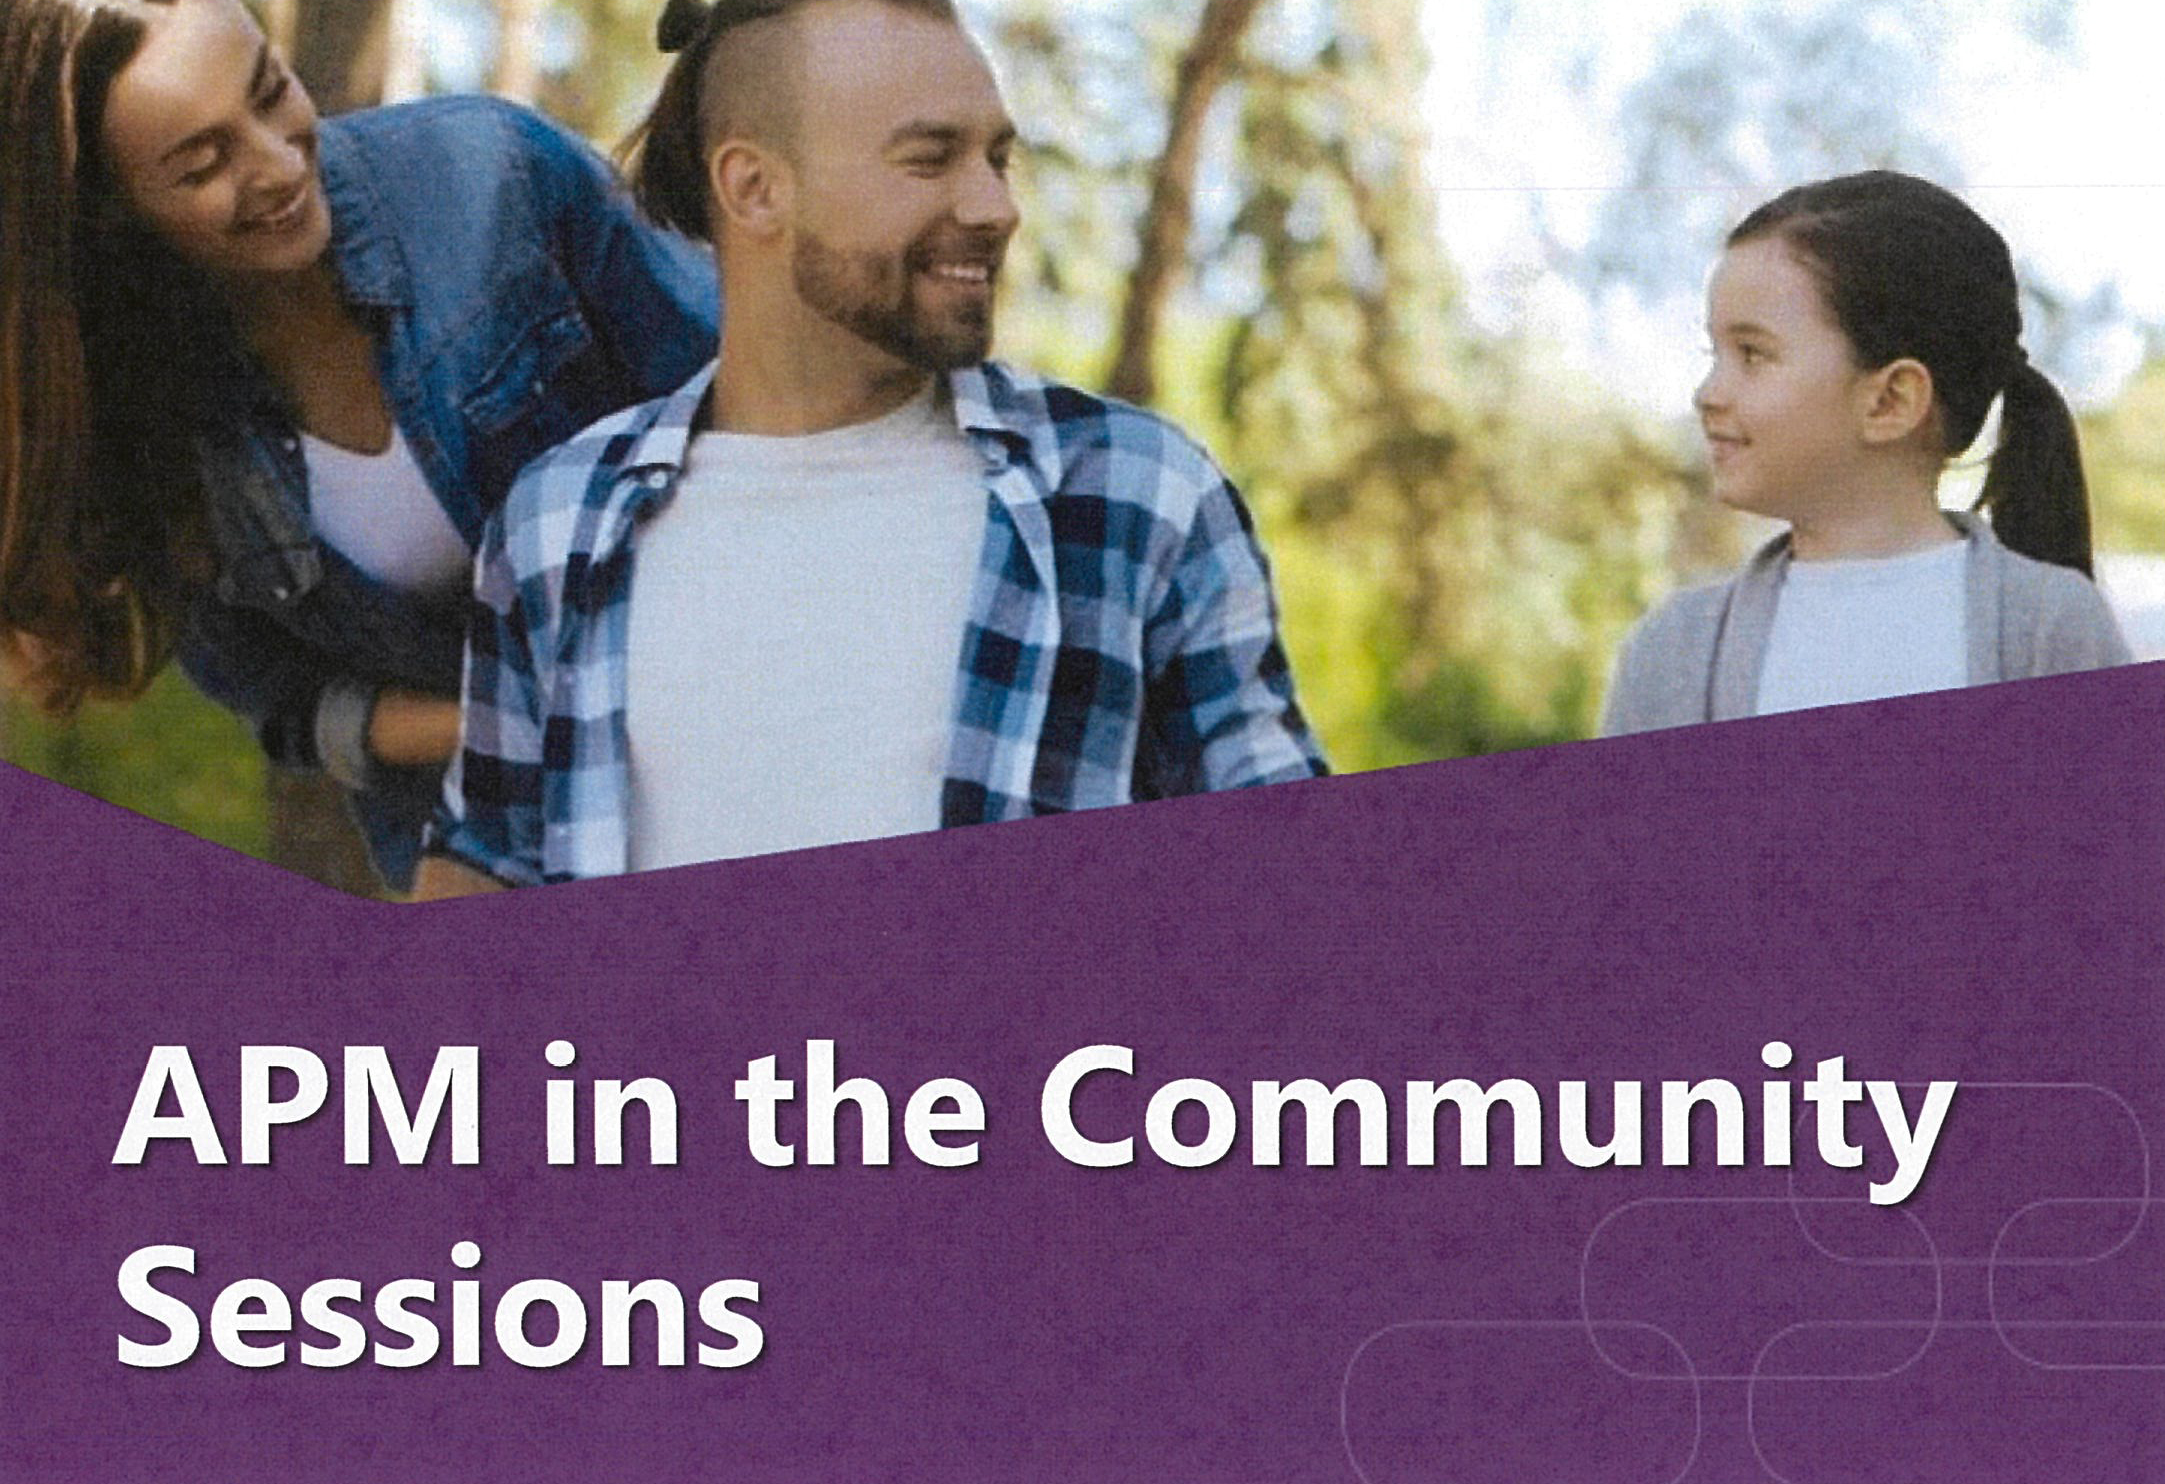 APM in the Community Sessions